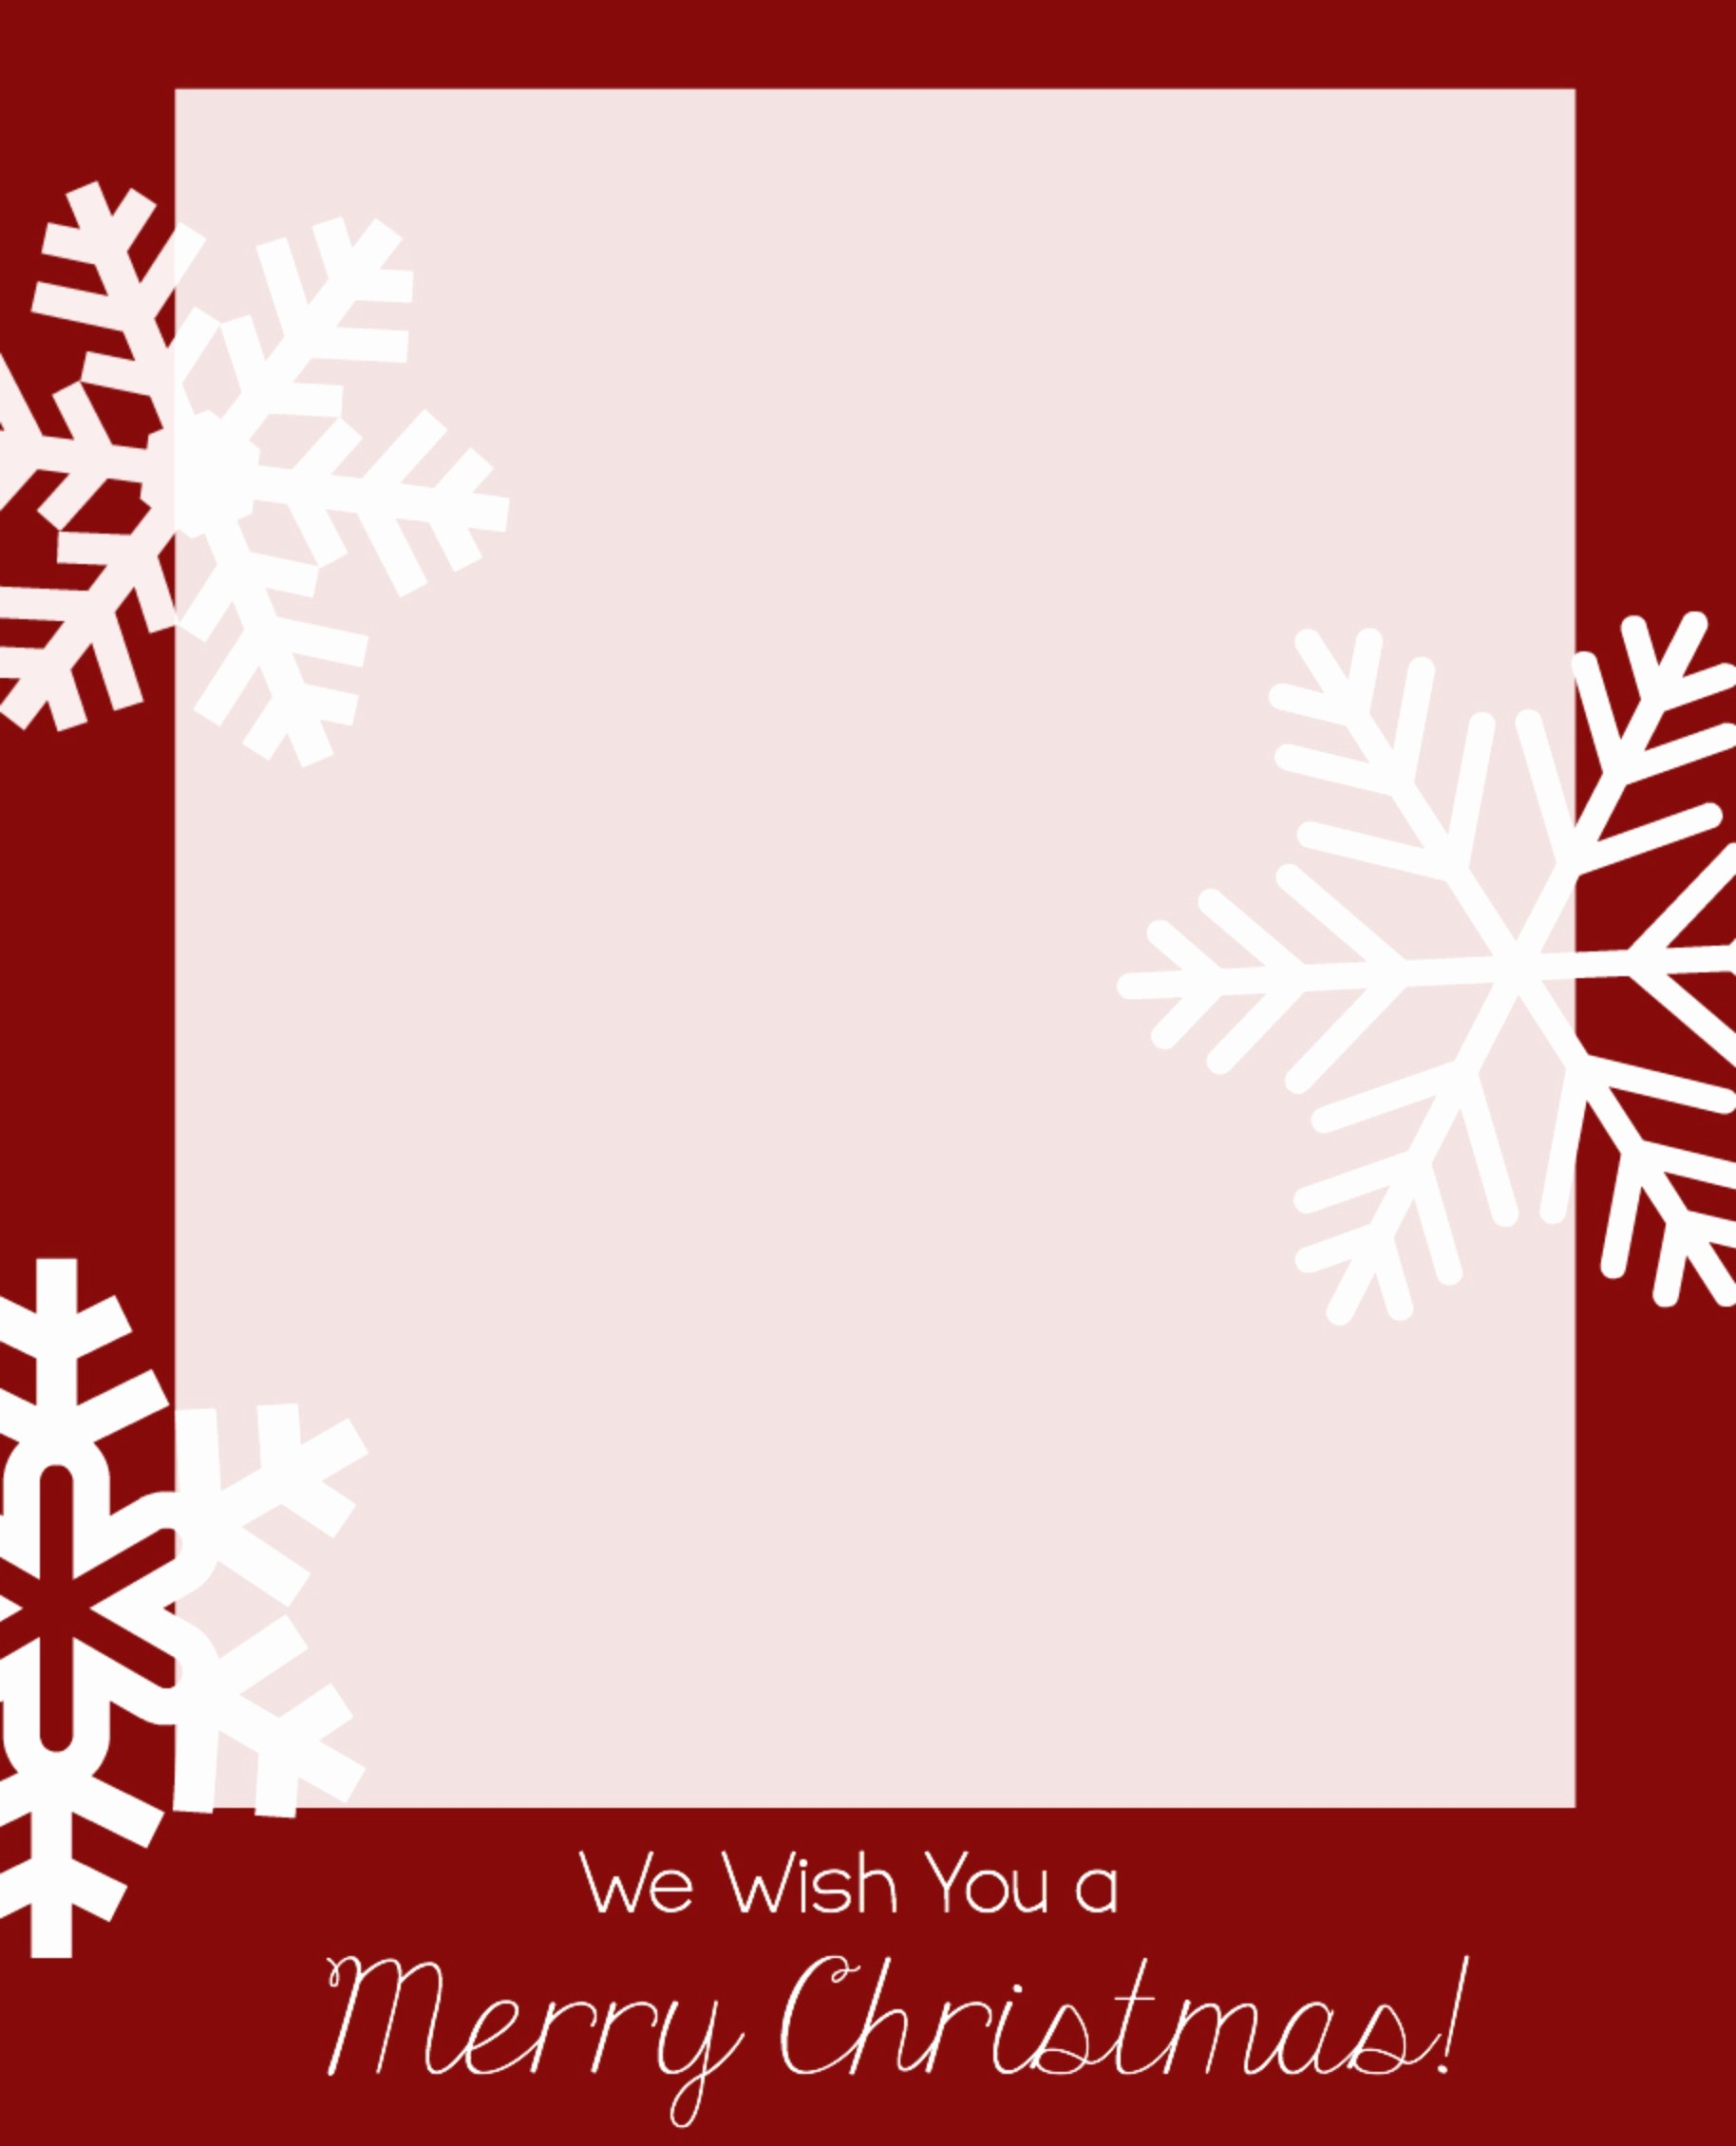 Templates for Cards Free Downloads Inspirational Free Christmas Card Templates